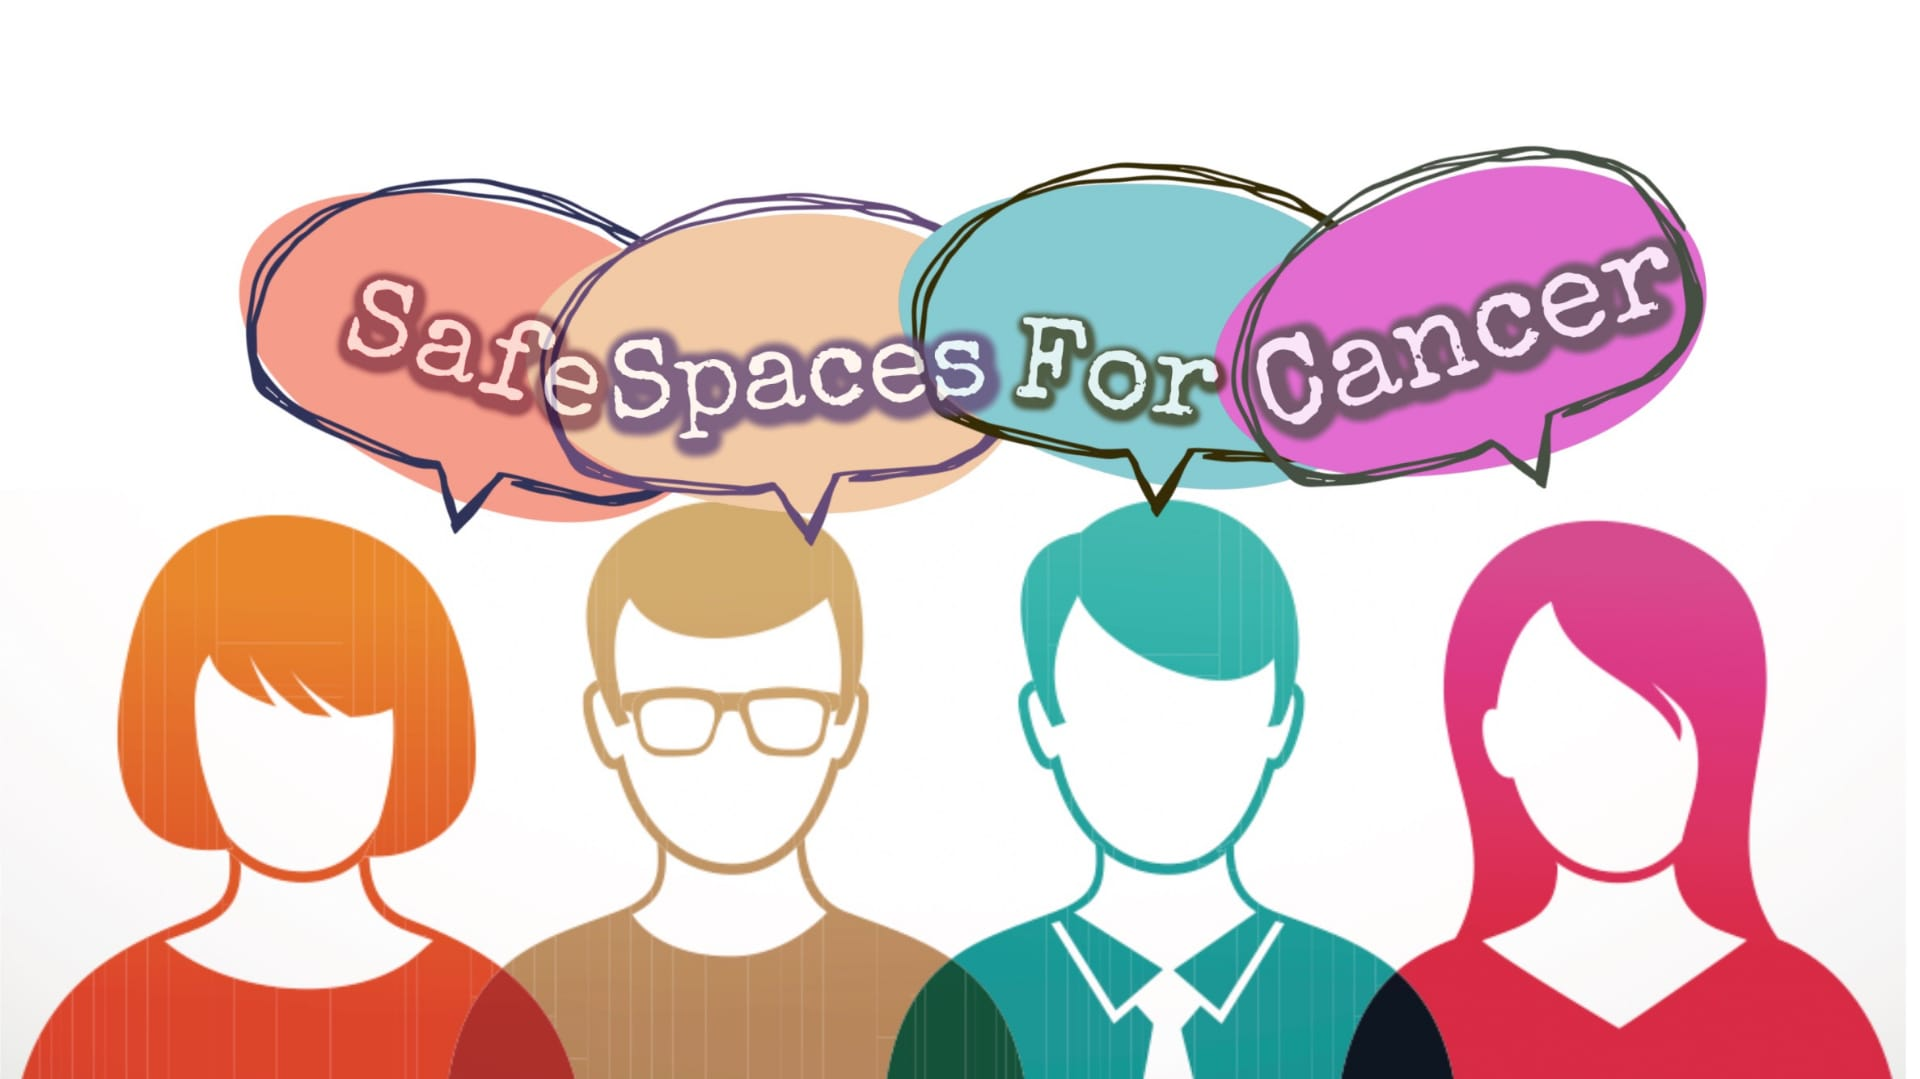 """Safe Spaces for Cancer is the name of the project that won the Gulbenkian 25<25 Challenge in the """"Health and Well-Being"""" category."""